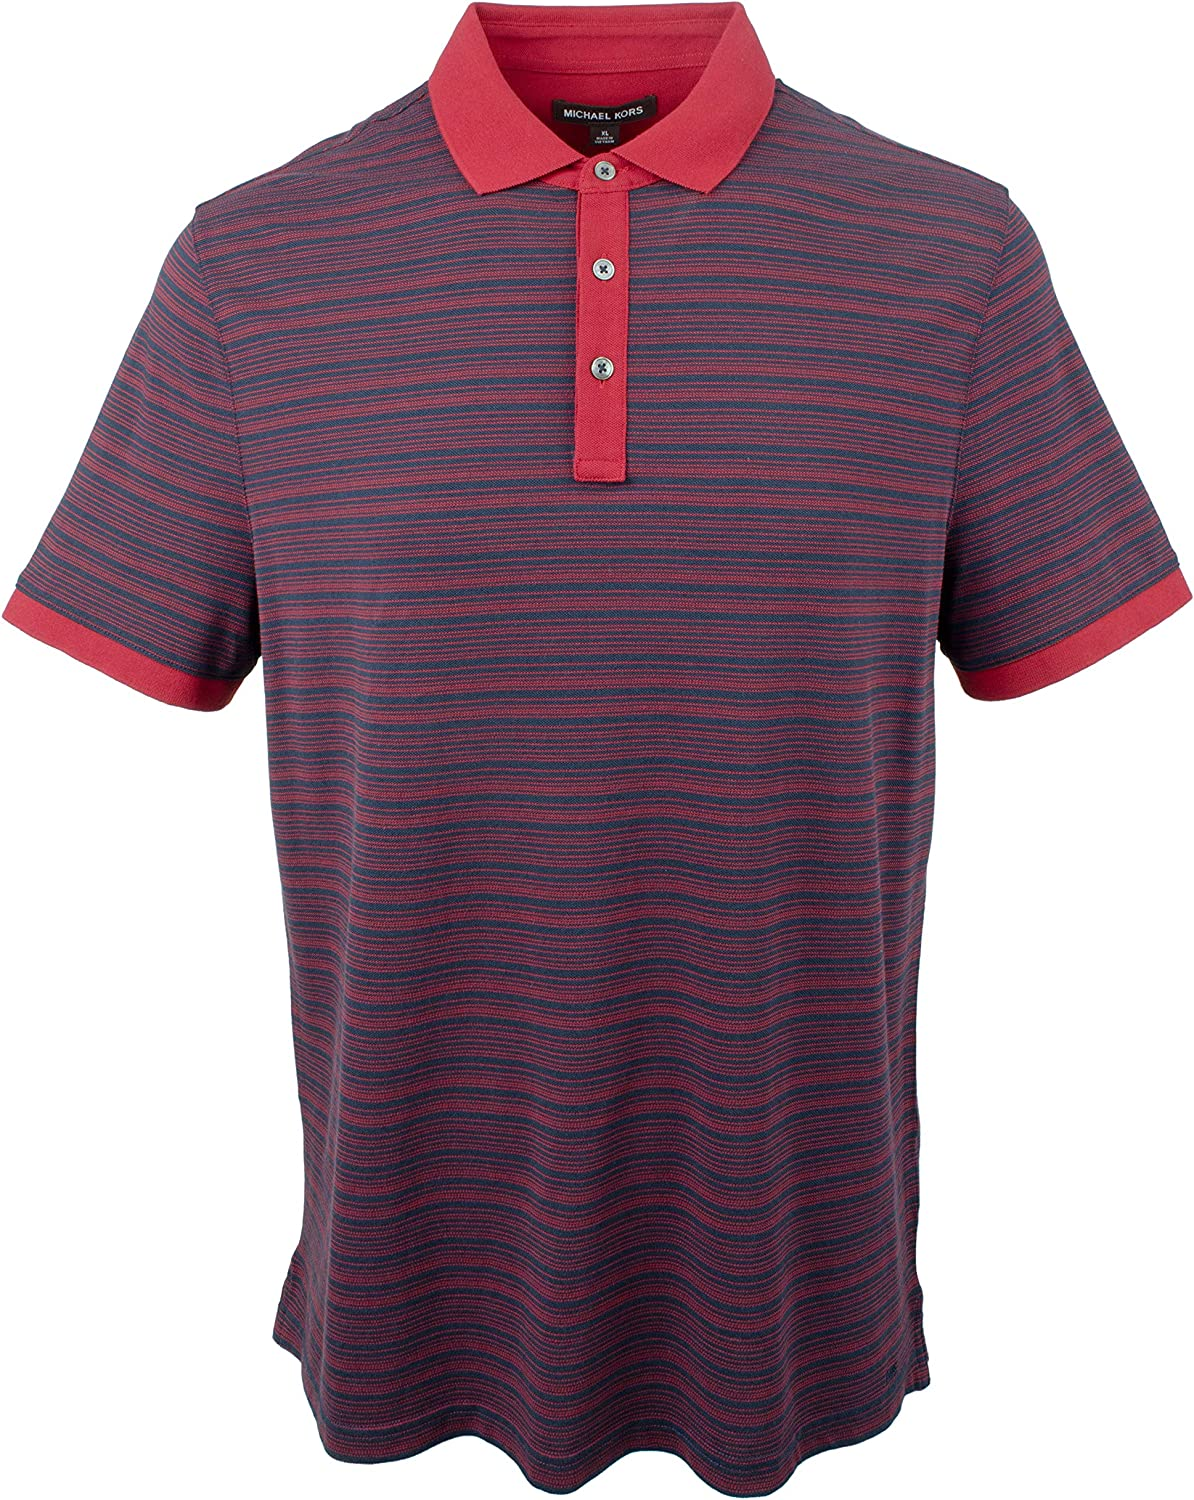 Michael Kors Mens Striped Silk Blend Polo Shirt-M-S: Amazon.es ...